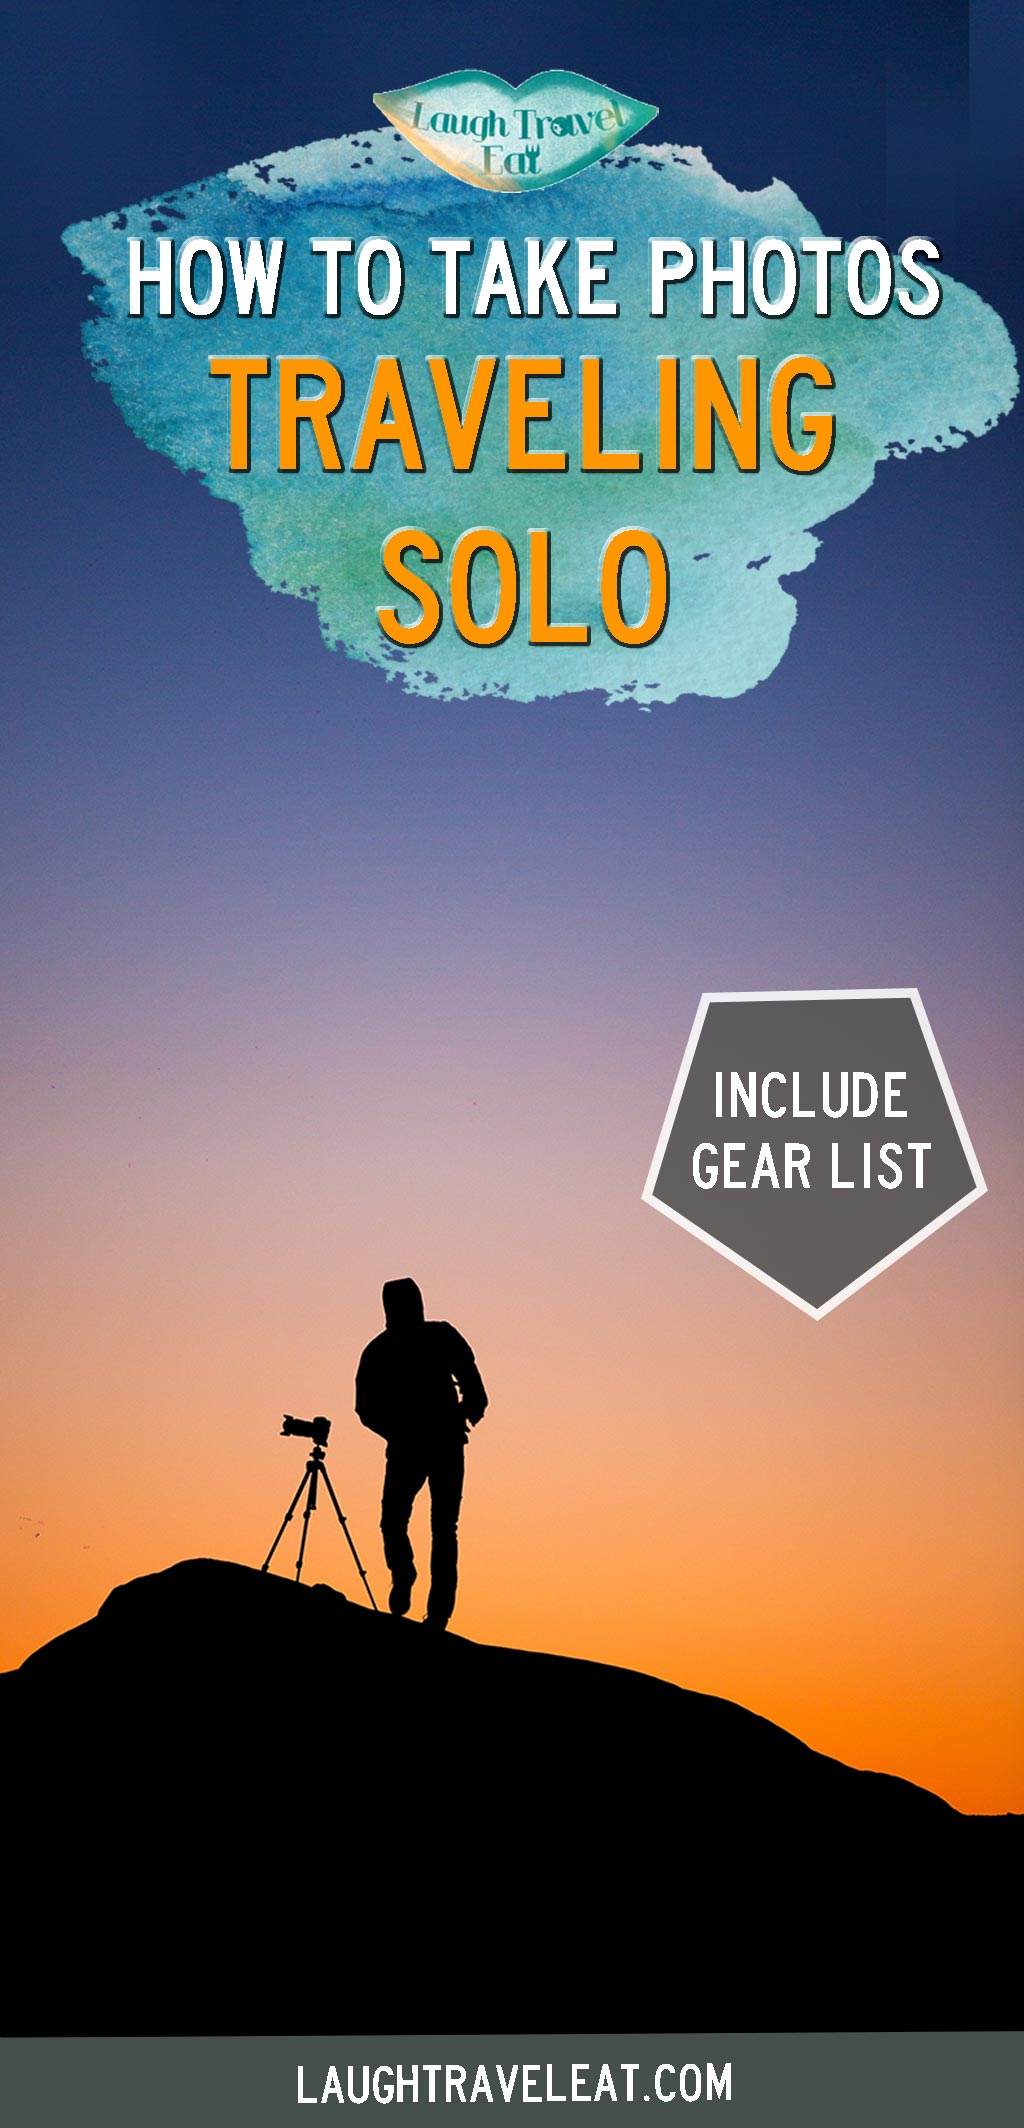 Taking photos when you travel solo is difficult. Aside from asking a stranger, here's how to shoot the best shot by yourself: #solophotography #solo #photos